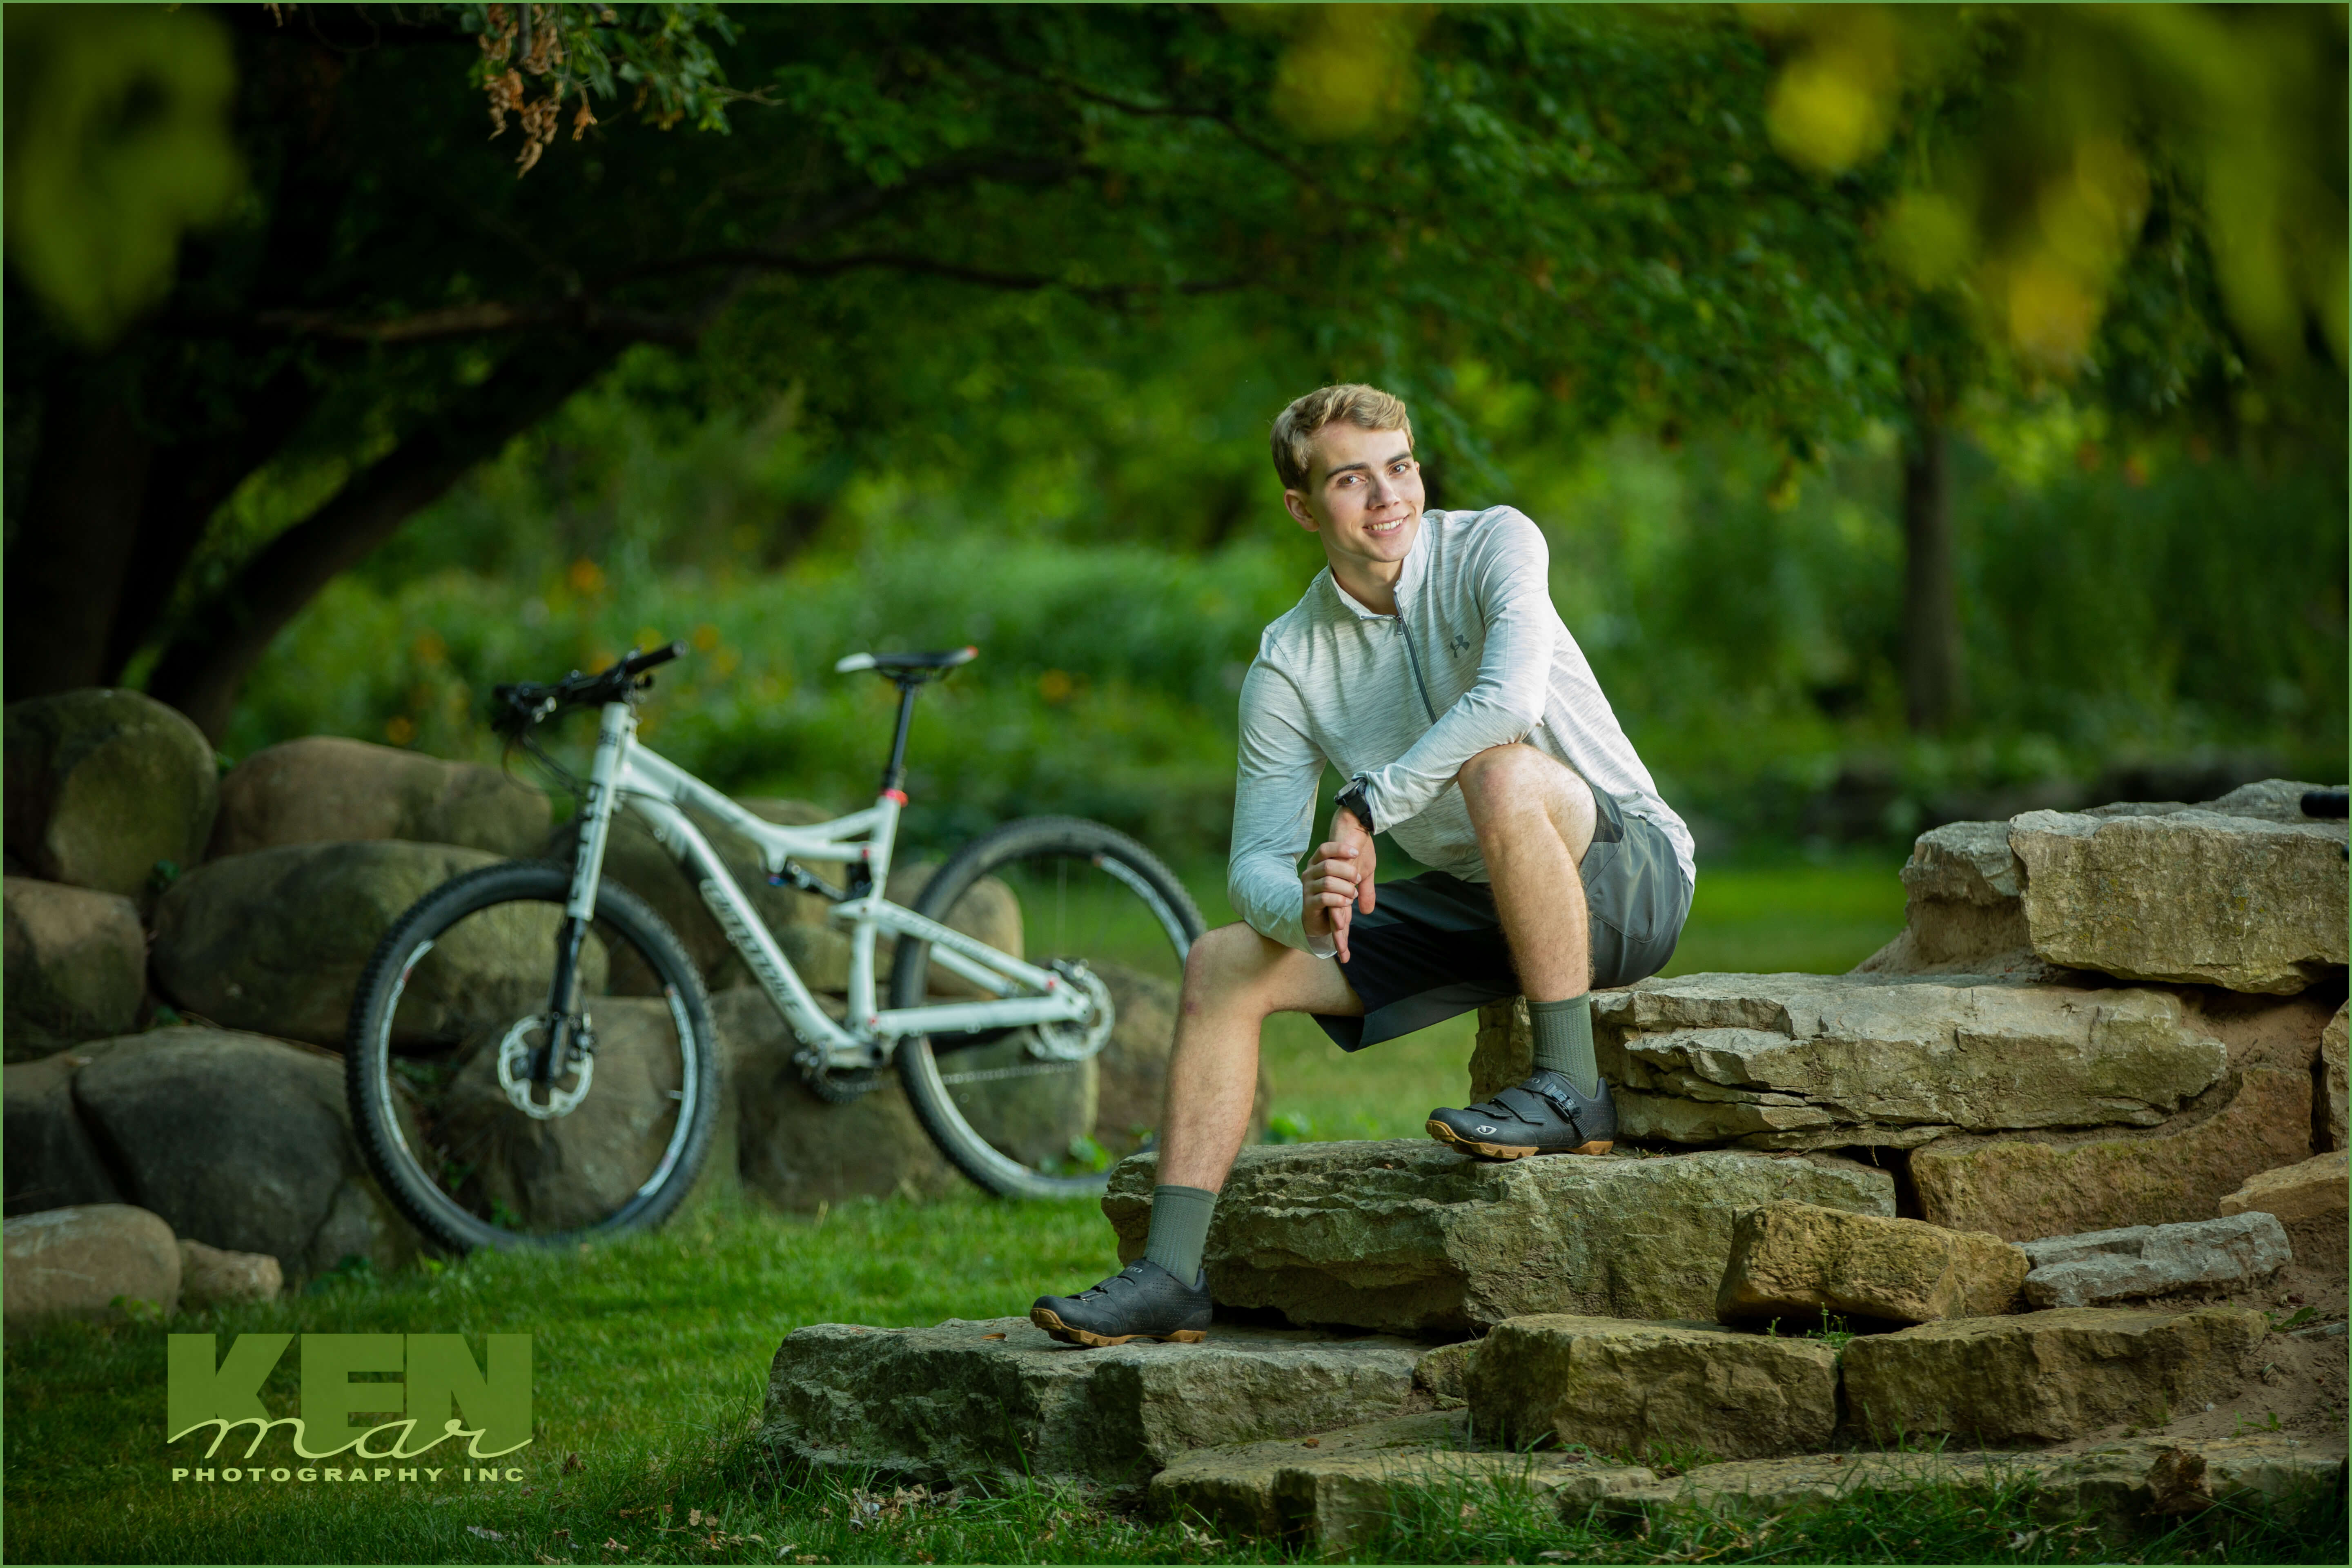 Young man posed outdoors